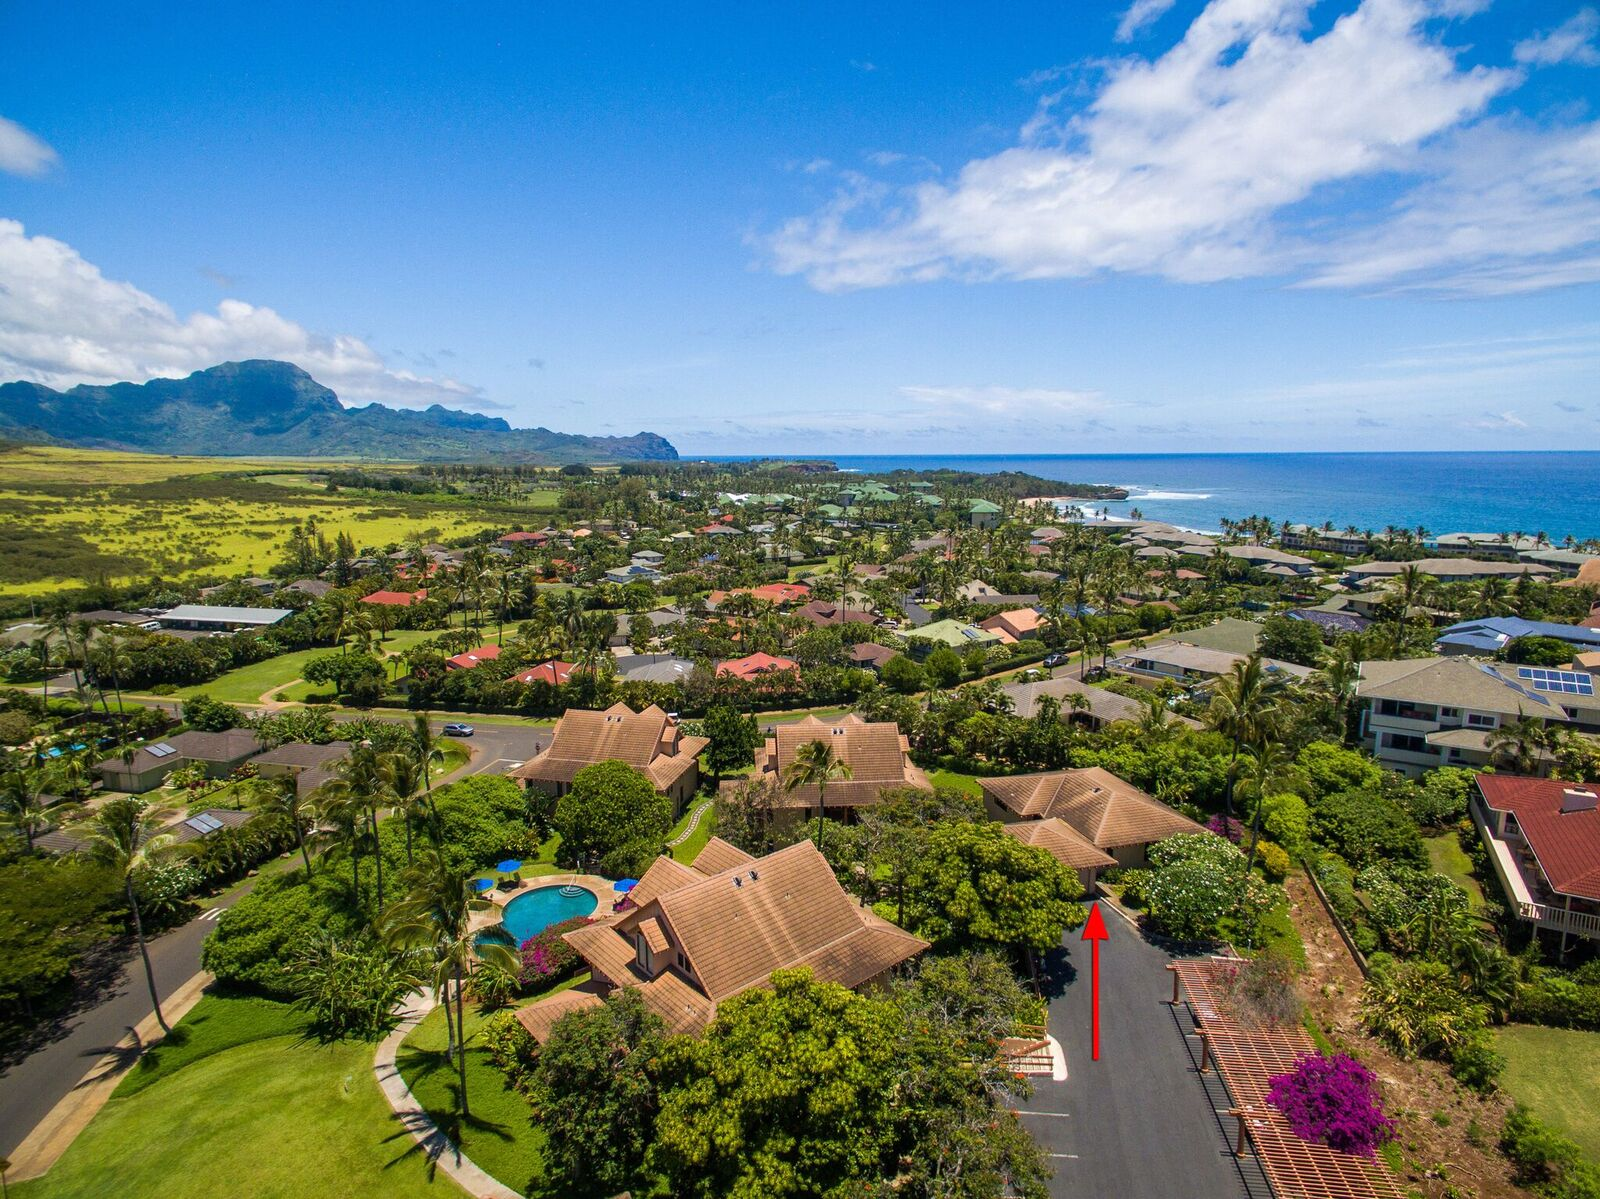 شقة بعمارة للـ Sale في Rare and Completely Detached Condominium with Two Car Garage in Koloa, Kauai 2370 Ho'ohu Road #311 Koloa, Hawaii 96756 United States